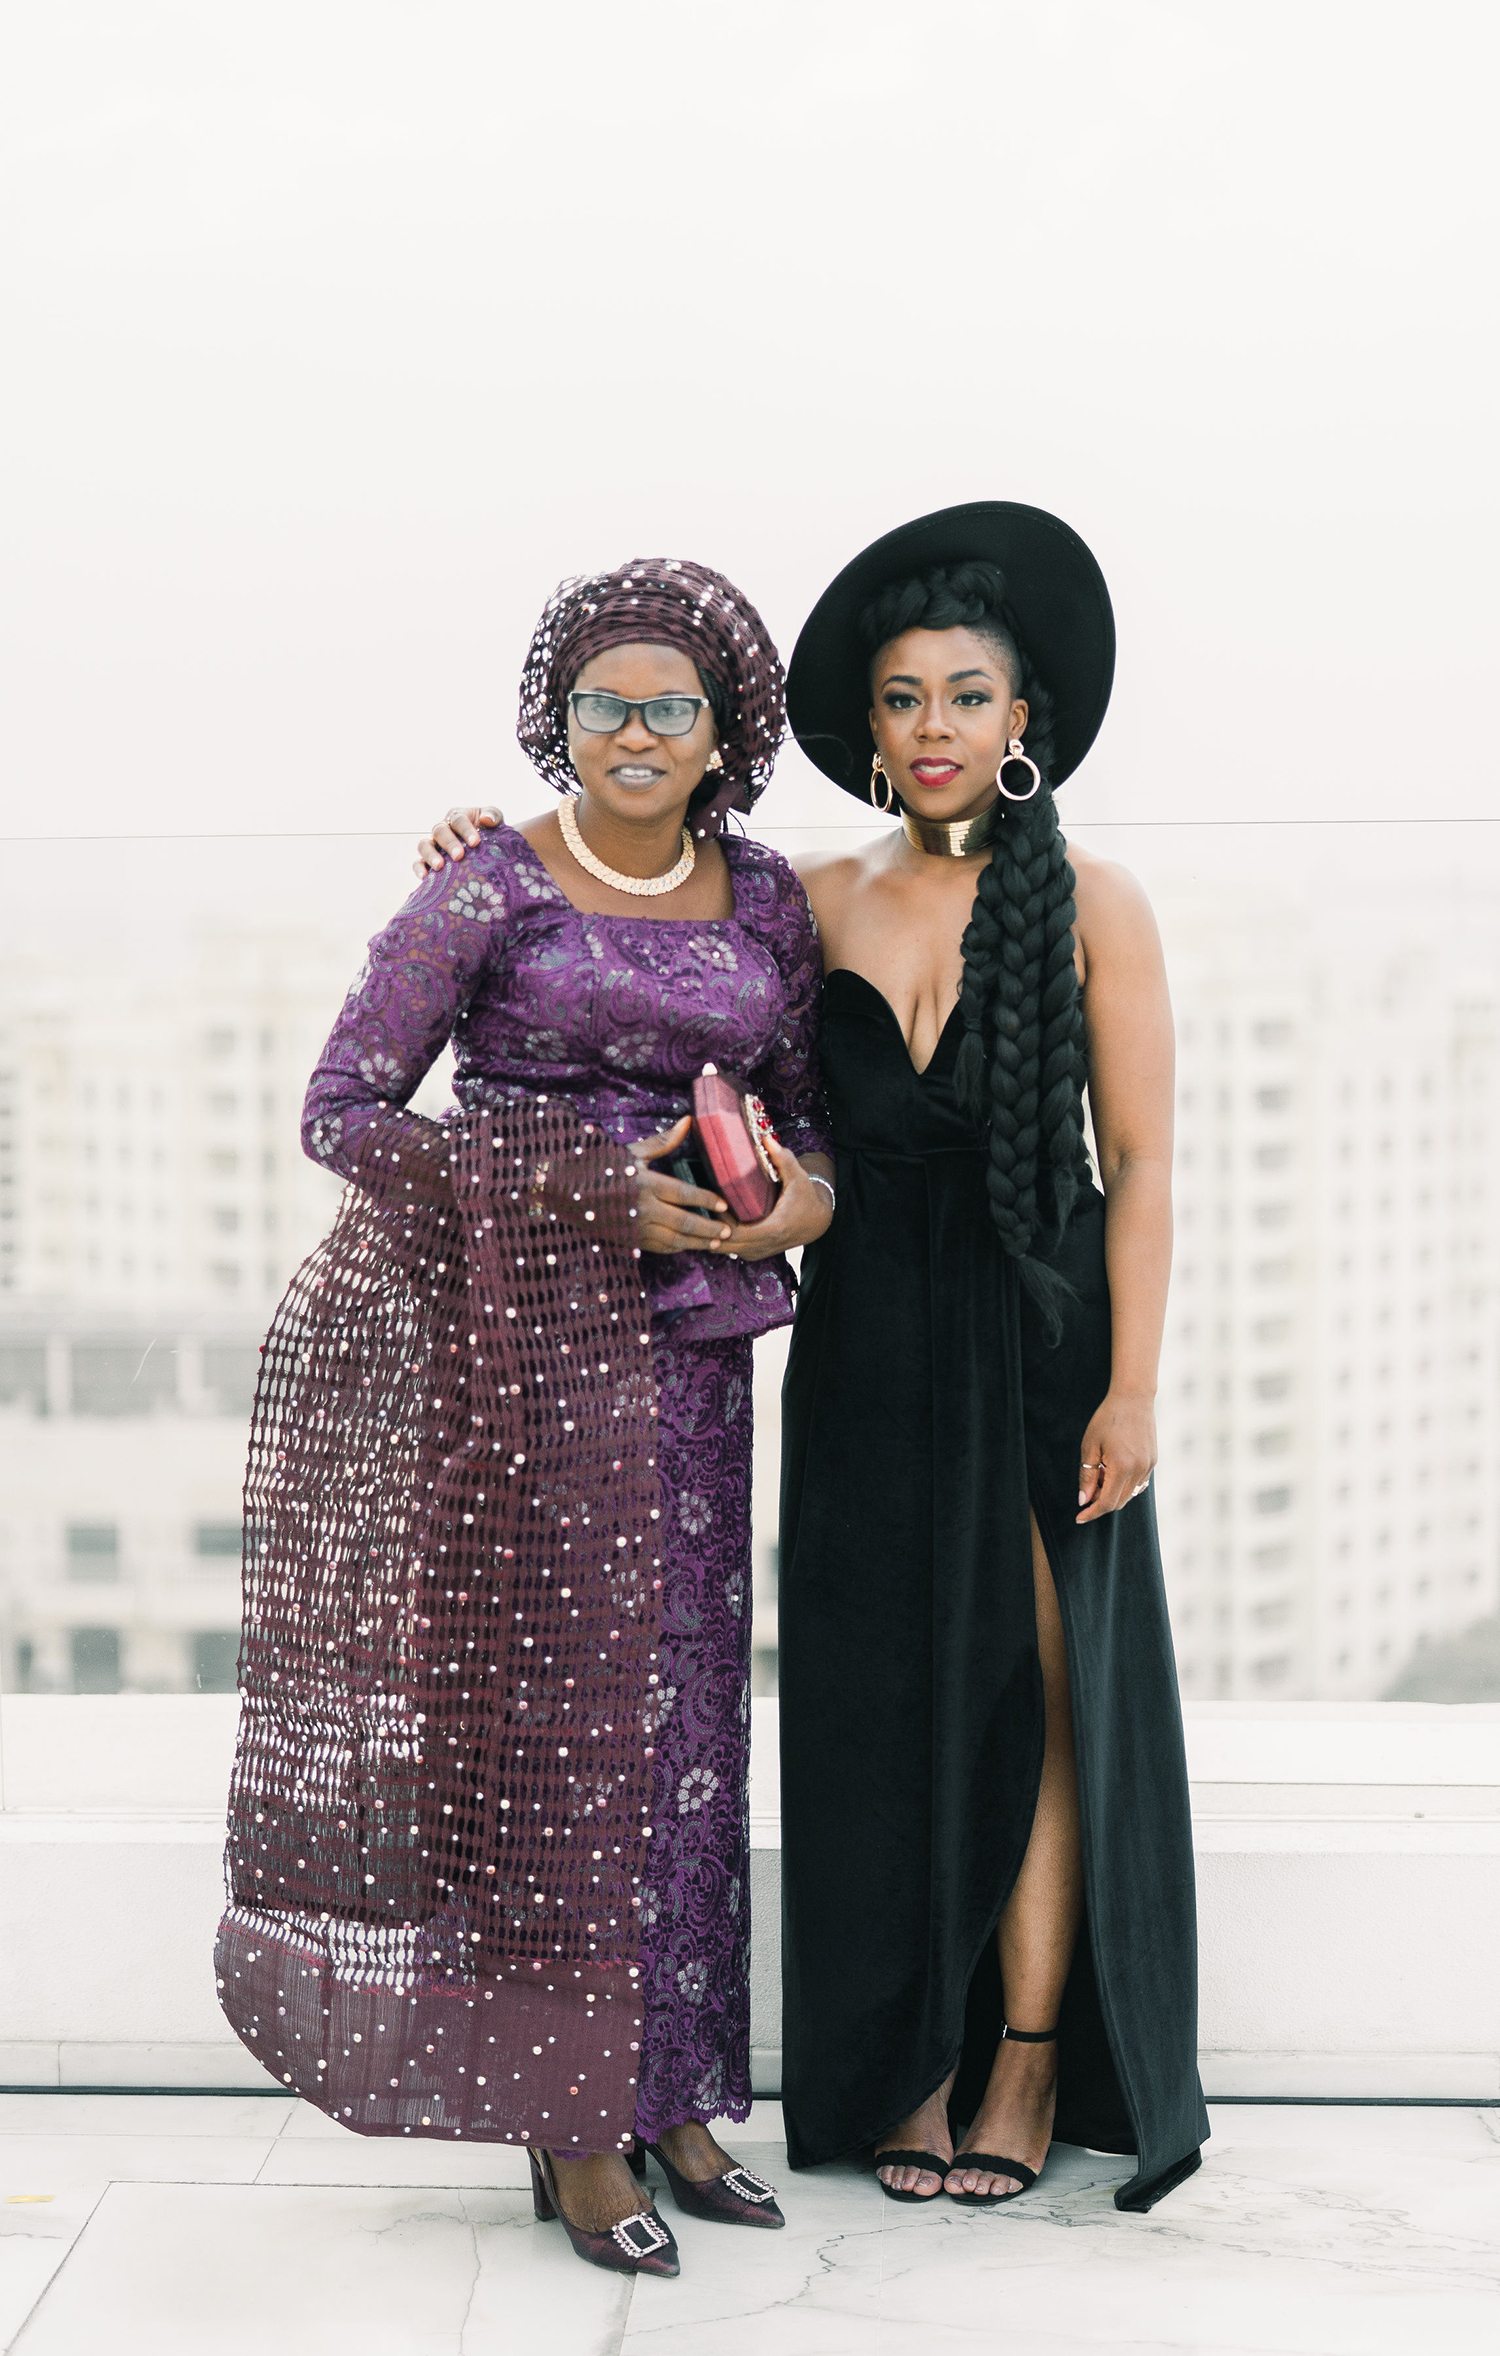 vanessa abidemi wedding guests on rooftop